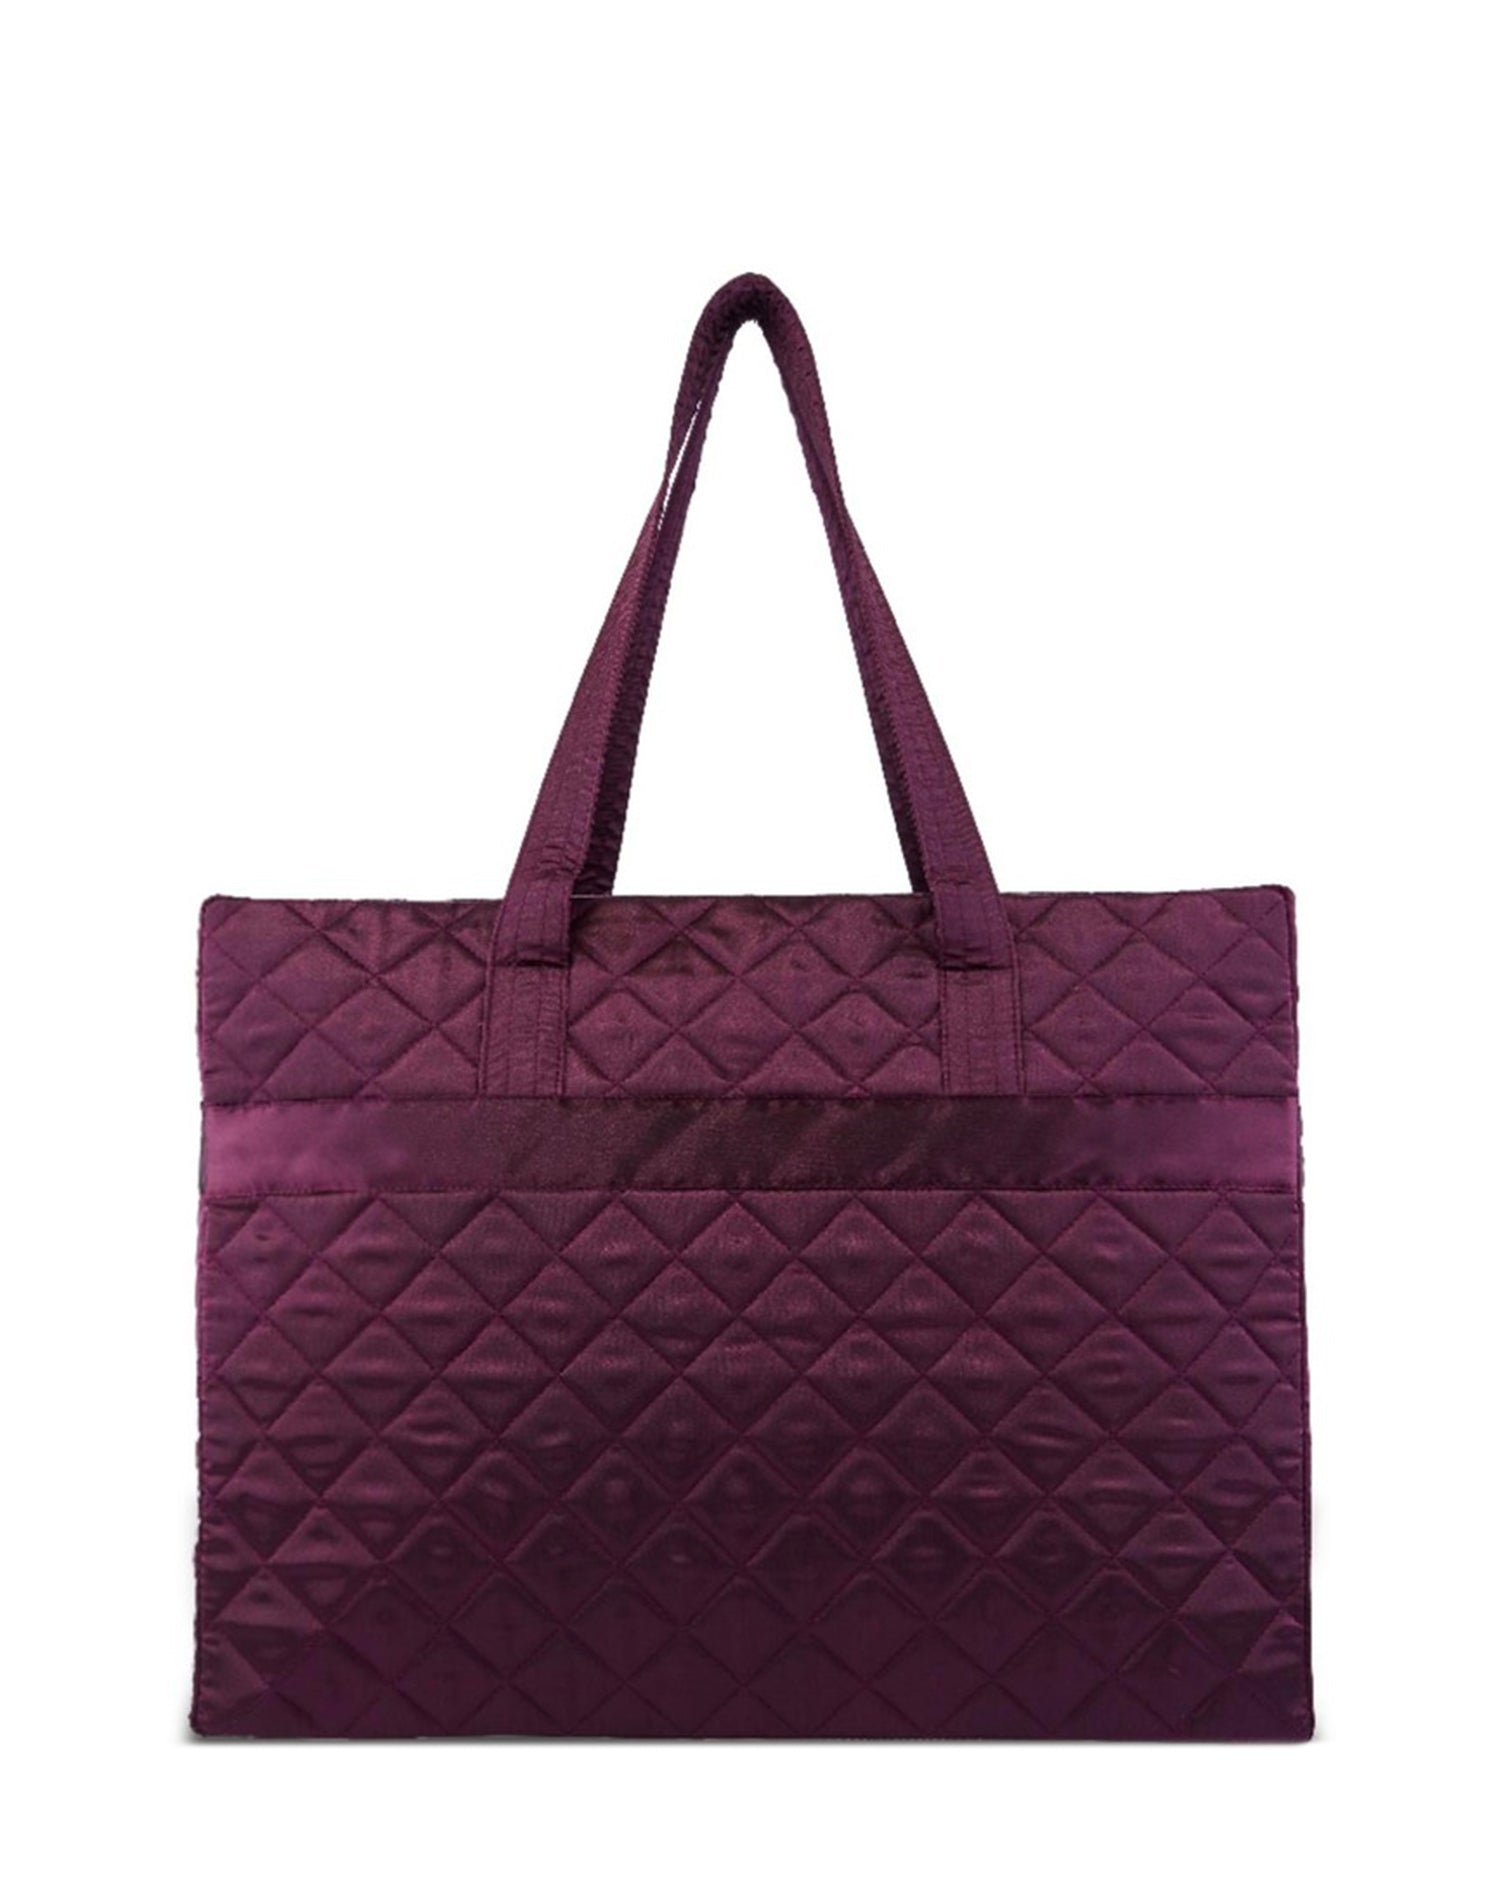 Purple Satin Quilted Tote Bag.紫色缎布側背提袋